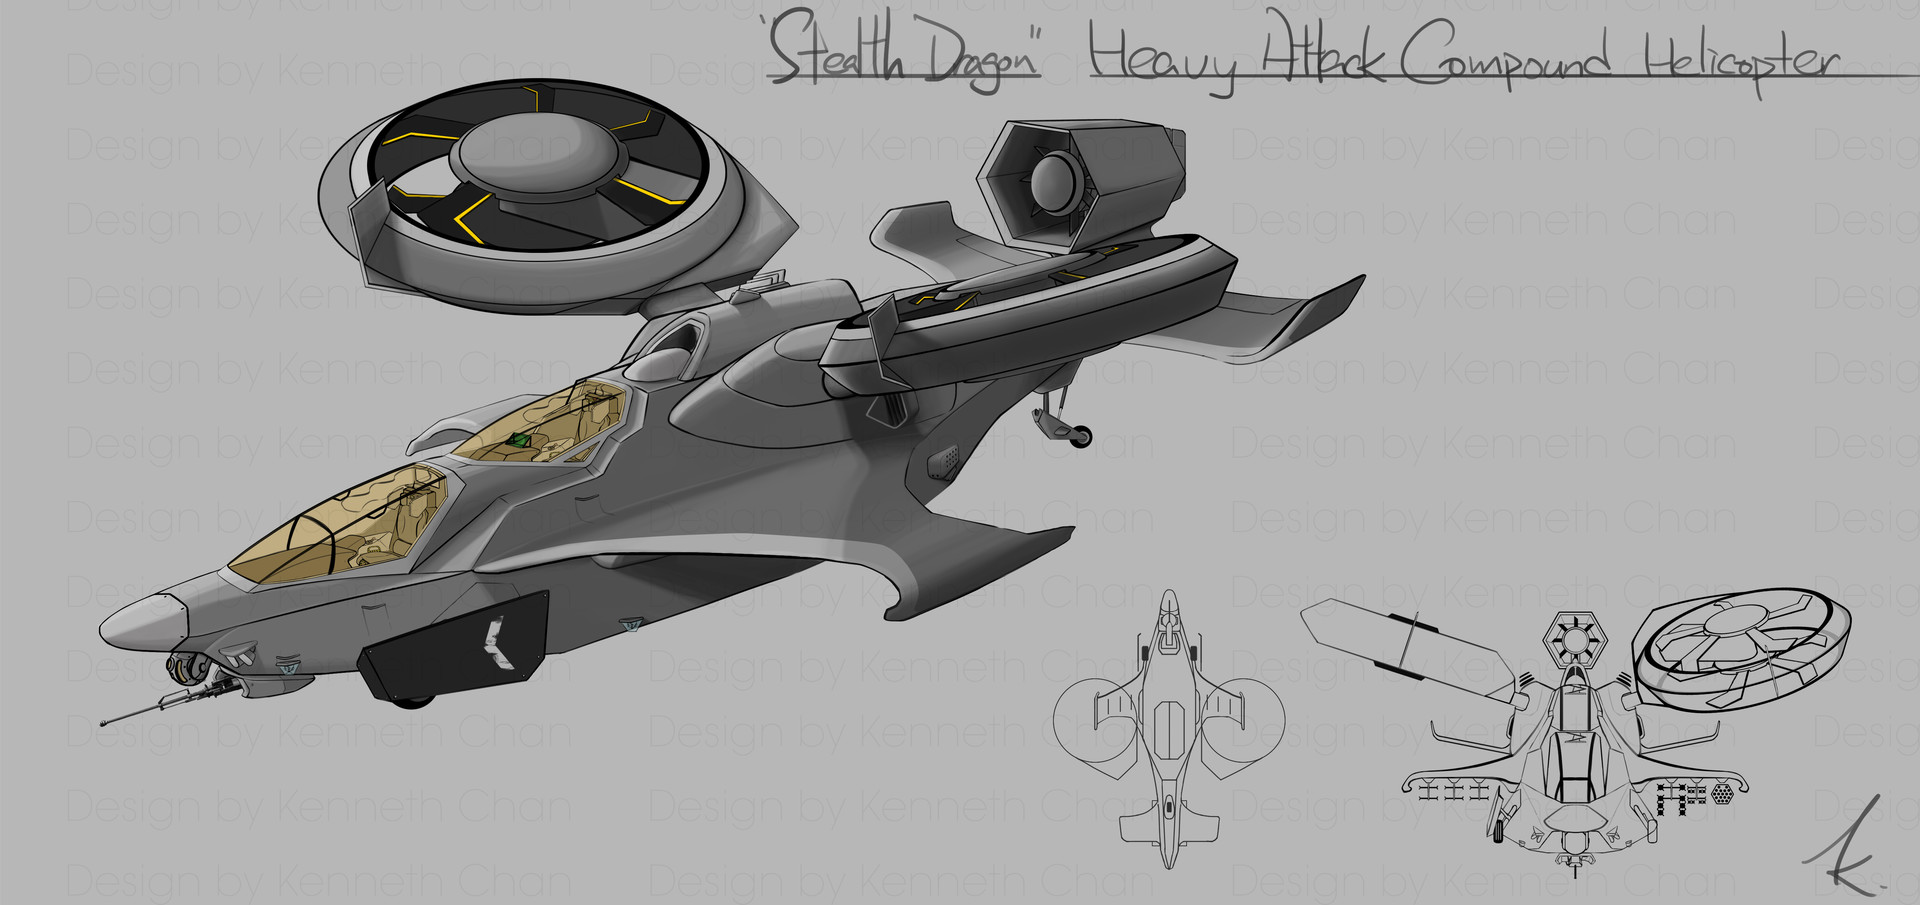 """""""Stealth Dragon"""" Heavy Attack Compound Helicopter"""